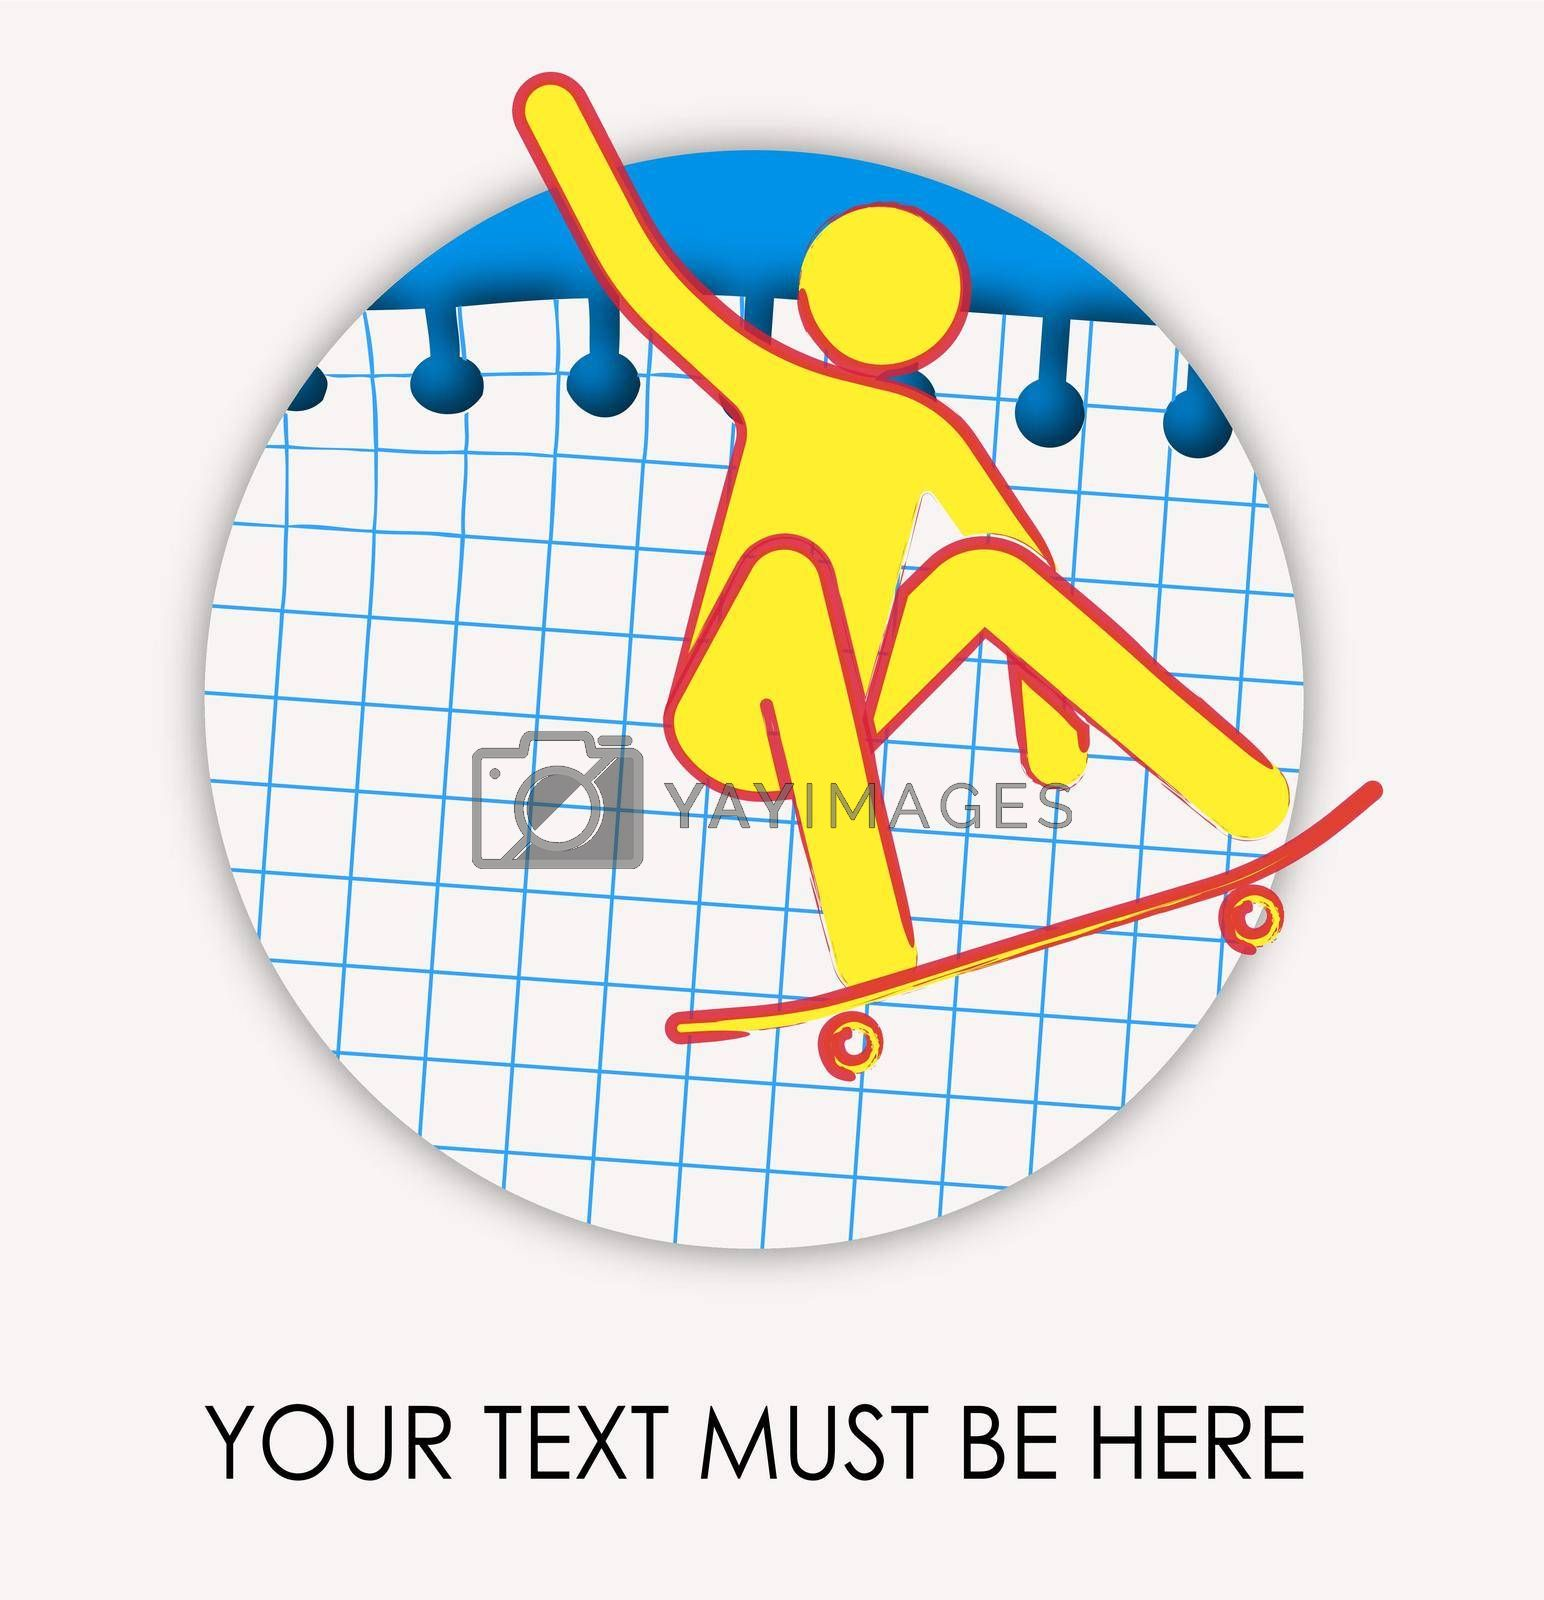 Logo, man on a skateboard performs a trick. Drawing by ink on a checkered sheet. Extreme sport, riding a board. Isolated vector on white background